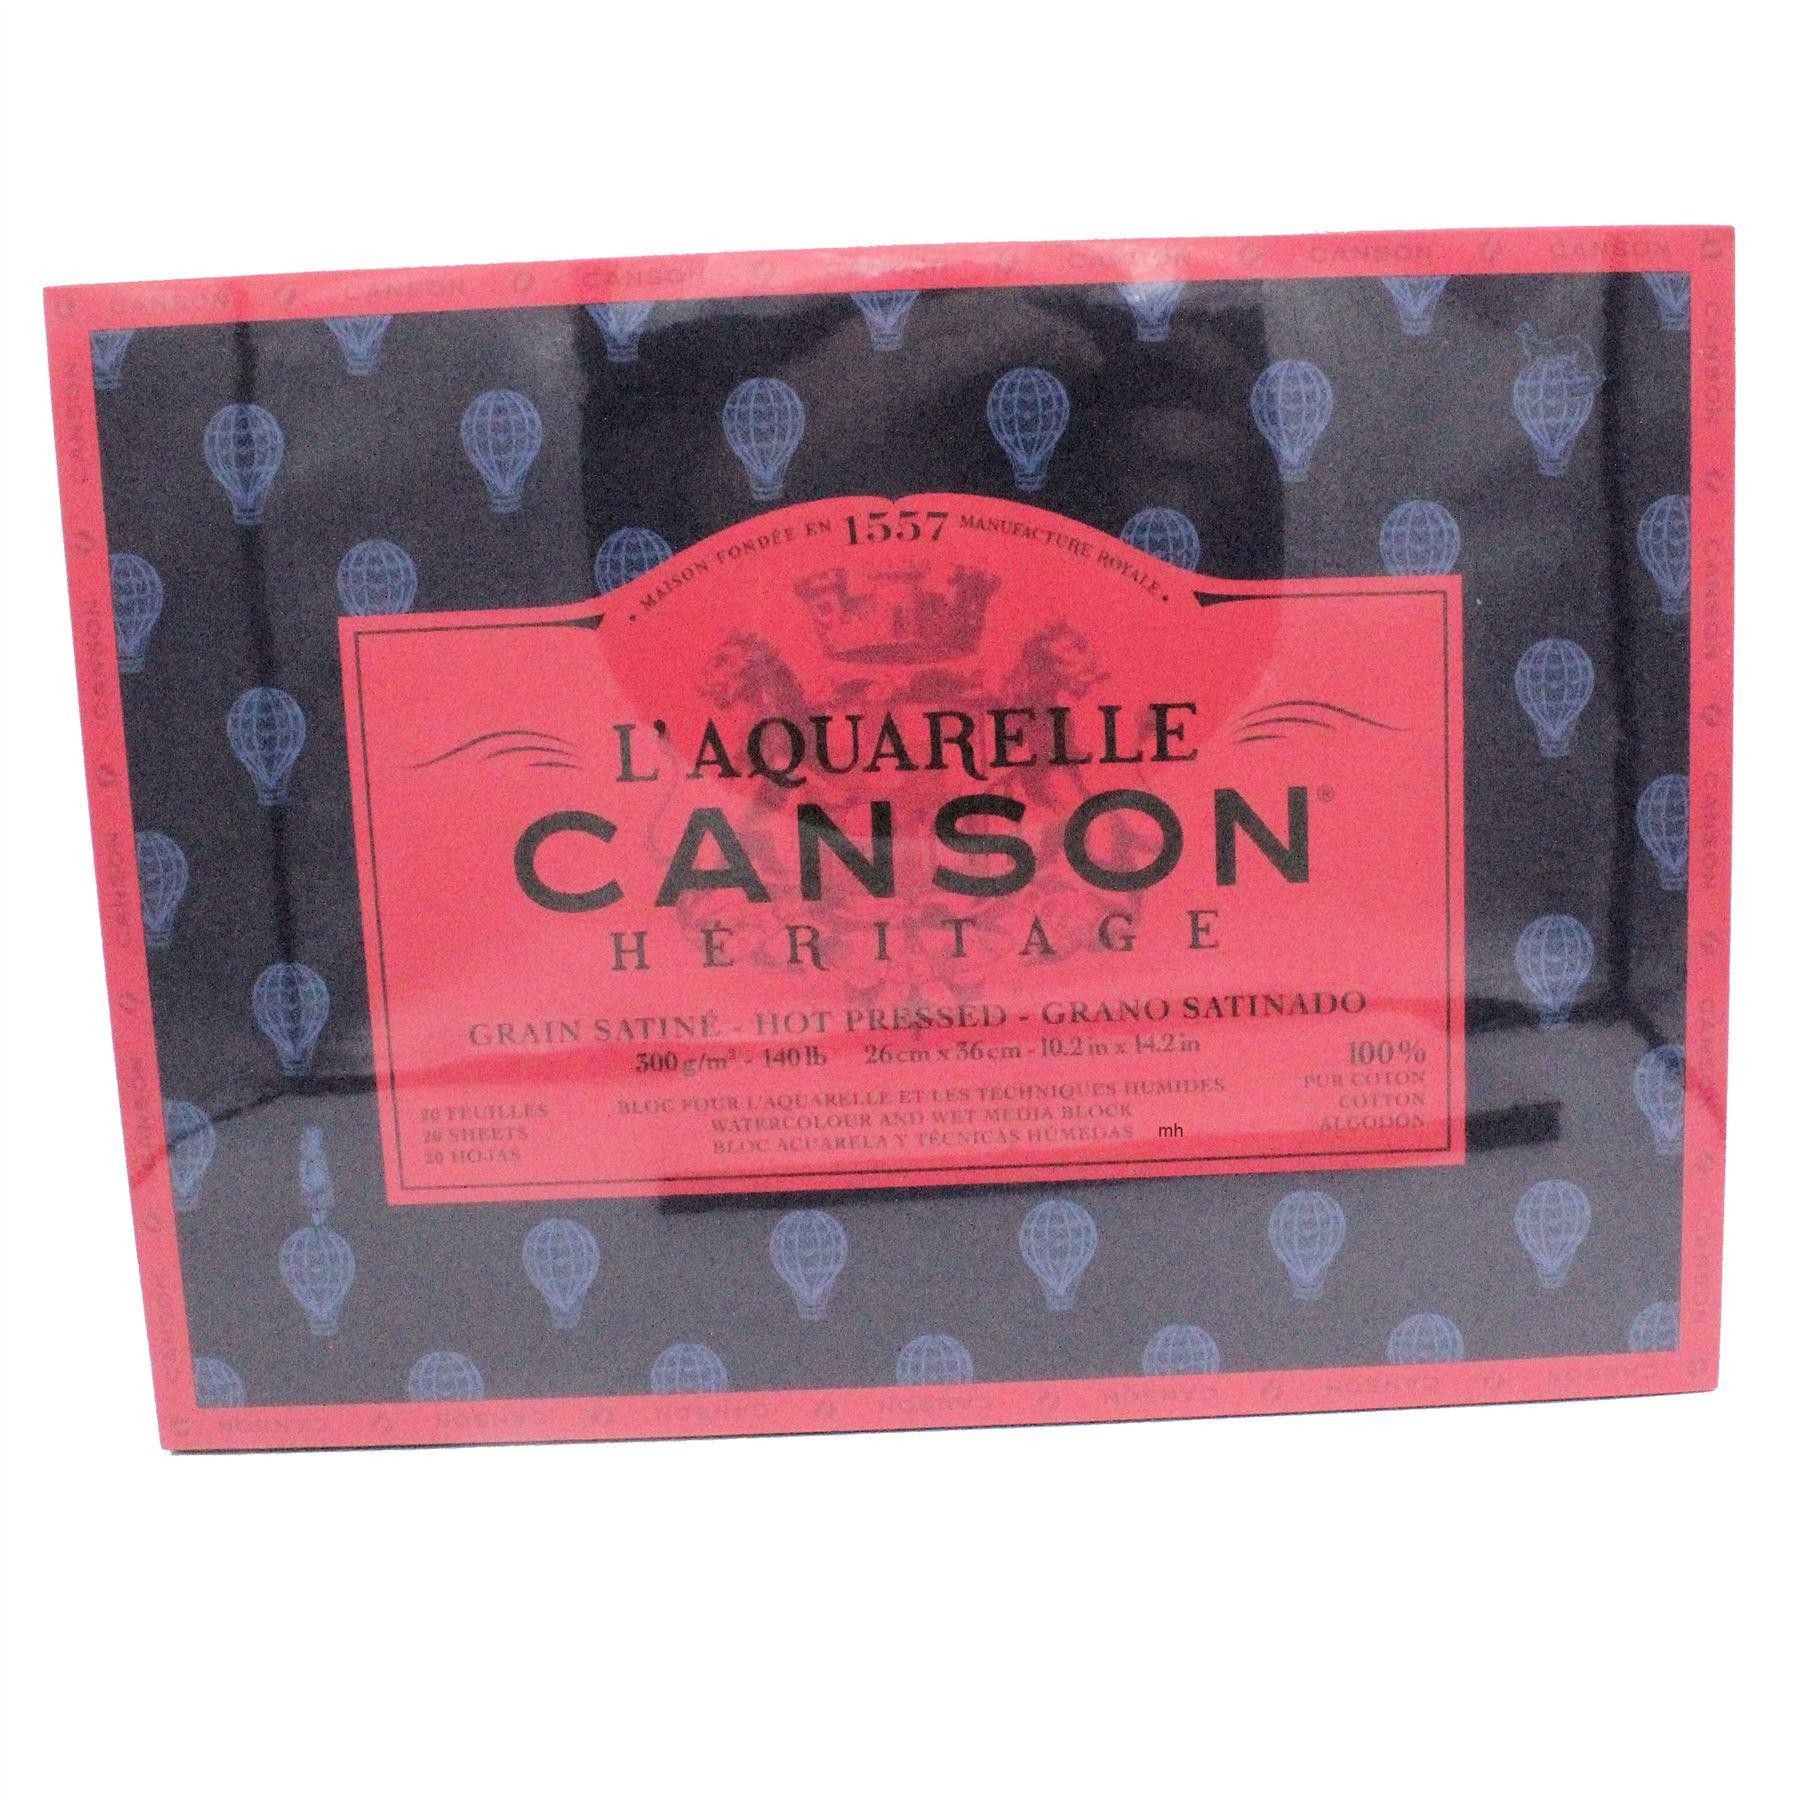 Canson L Aquarelle Heritage Block Hot Press Watercolour Paper